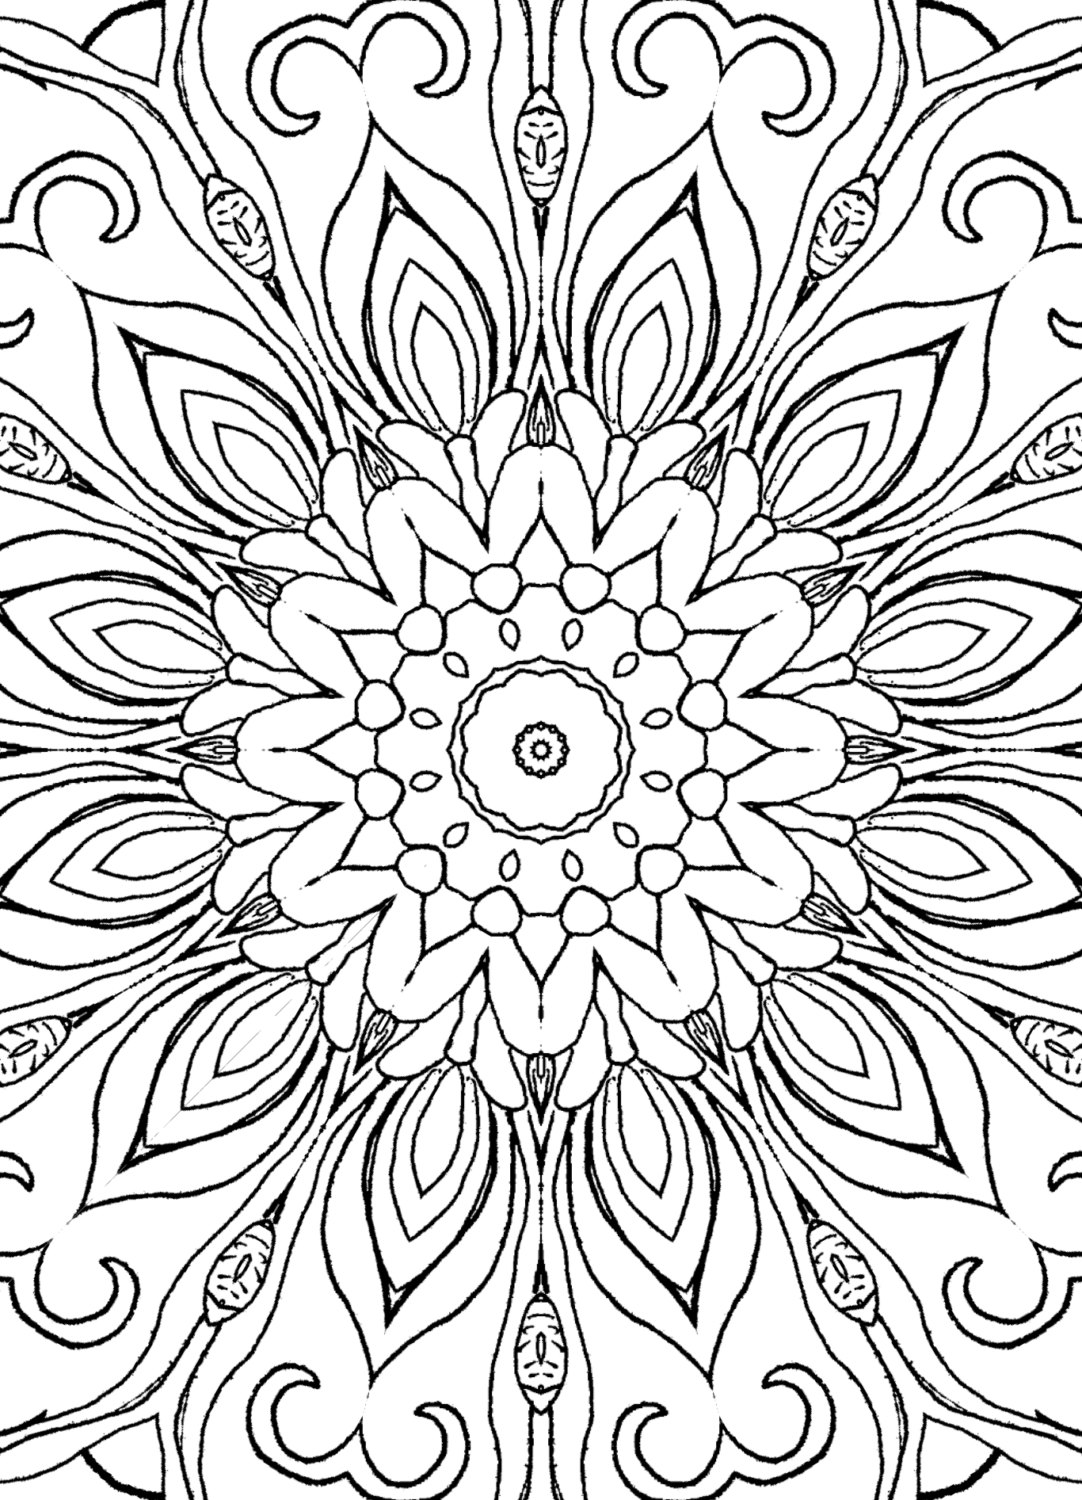 pattern coloring pages for adults beautiful doodle floral pattern adult coloring pages printable pattern adults for pages coloring